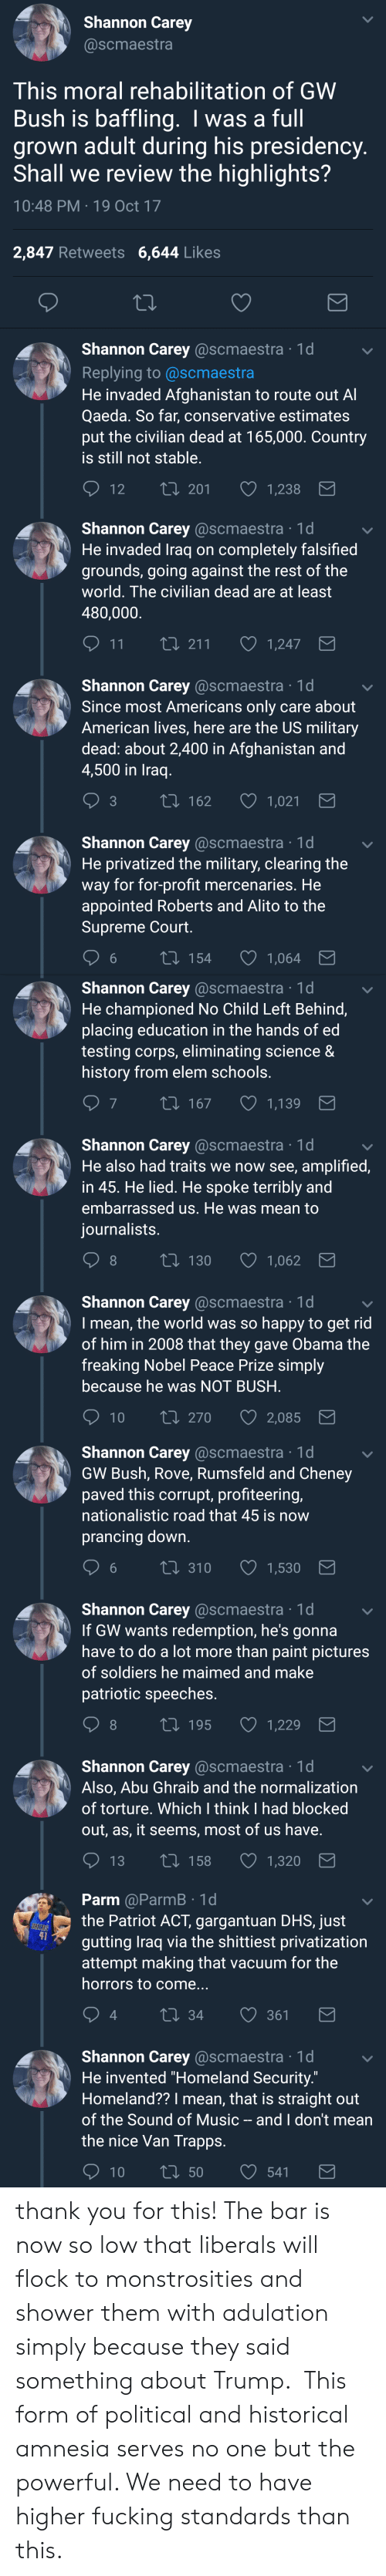 Fucking, Music, and Obama: Shannon Carey  @scmaestra  This moral rehabilitation of GWW  Bush is baffling. I was a full  grown adult during his presidency  Shall we review the highlights?  10:48 PM 19 Oct 17  2,847 Retweets 6,644 Likes  Shannon Carey @scmaestra 1d  Replying to @scmaestra  He invaded Afghanistan to route out A  Qaeda. So far, conservative estimates  put the civilian dead at 165,000. Country  is still not stable  12 T  t0 201 1,238   Shannon Carey @scmaestra 1d  He invaded Traq on completely falsified  grounds, going against the rest of the  world. The civilian dead are at least  480,000  11  1,247  Shannon Carey @scmaestra 1d  Since most Americans only care about  American lives, here are the US military  dead: about 2,400 in Afghanistan and  4,500 in Iraq  t 162  1,021  Shannon Carey @scmaestra 1d  He privatized the military, clearing the  way for for-profit mercenaries. He  appointed Roberts and Alito to the  Supreme Court  6  154  1,064   Shannon Carey @scmaestra 1d  He championed No Child Left Behind,  placing education in the hands of ed  testing corps, eliminating science &  history from elem schools  7  167  1,139  Shannon Carey @scmaestra 1d  He also had traits we now see, amplified,  in 45. He lied. He spoke terribly and  embarrassed us. He was mean to  iournalists  8  130  1,062  Shannon Carey @scmaestra 1d  I mean, the world was so happy to get rid  of him in 2008 that they gave Obama the  freaking Nobel Peace Prize simply  because he was NOT BUSH  10 ti 270  2,085   Shannon Carey @scmaestra 1d  GW Bush, Rove, Rumsfeld and Cheney  paved this corrupt, profiteering,  nationalistic road that 45 is now  prancing down  6 t0 310 1,530  Shannon Carey @scmaestra 1d  If GW wants redemption, he's gonna  have to do a lot more than paint pictures  of soldiers he maimed and make  patriotic speeches  8  t 195  1,229  Shannon Carey @scmaestra 1d  Also, Abu Ghraib and the normalization  of torture. Which I think I had blocked  out, as, it seems, most of us